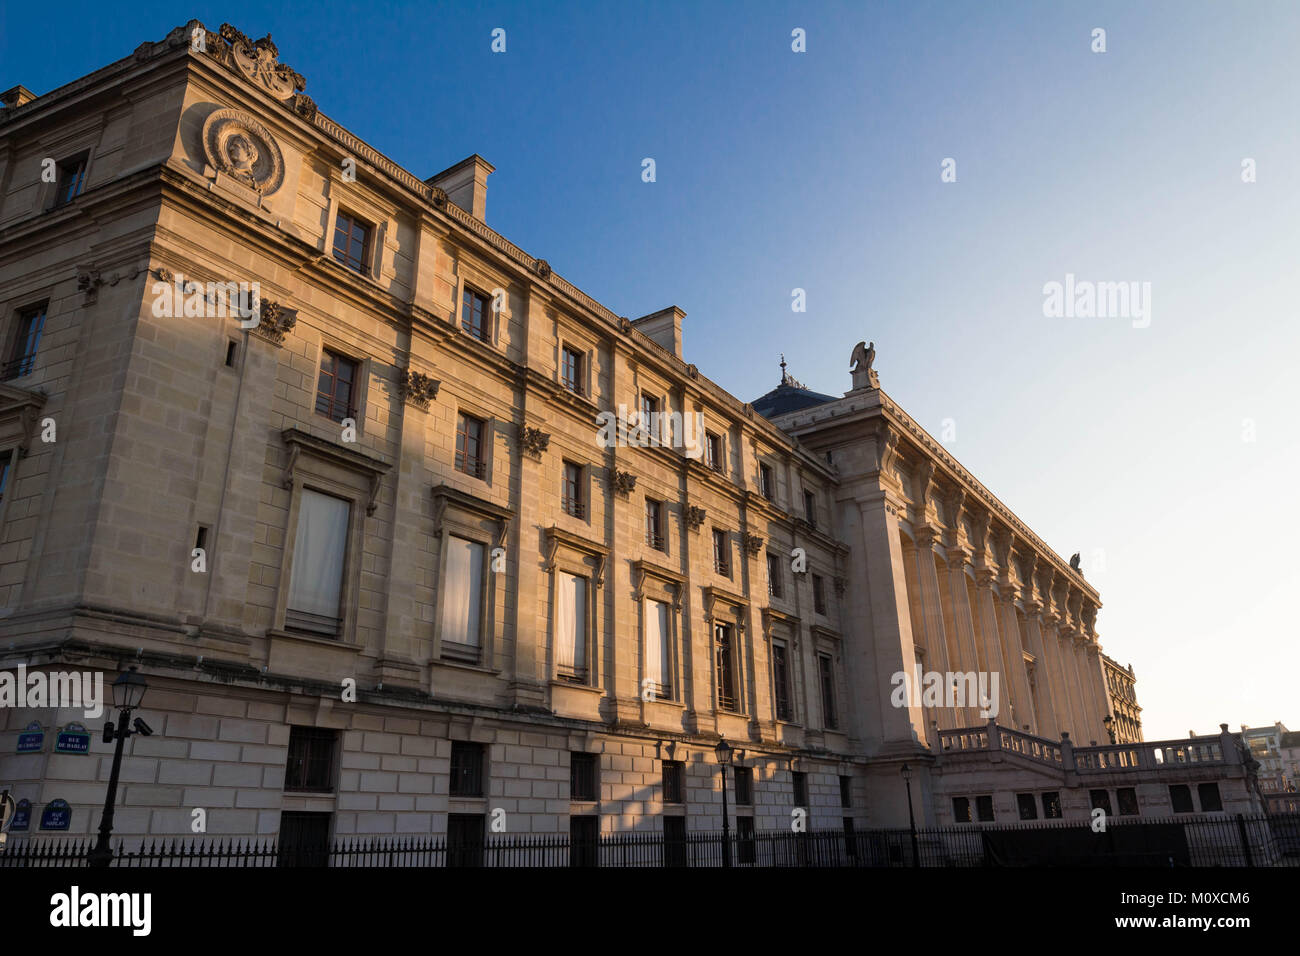 The Justice palace, Paris, France. - Stock Image